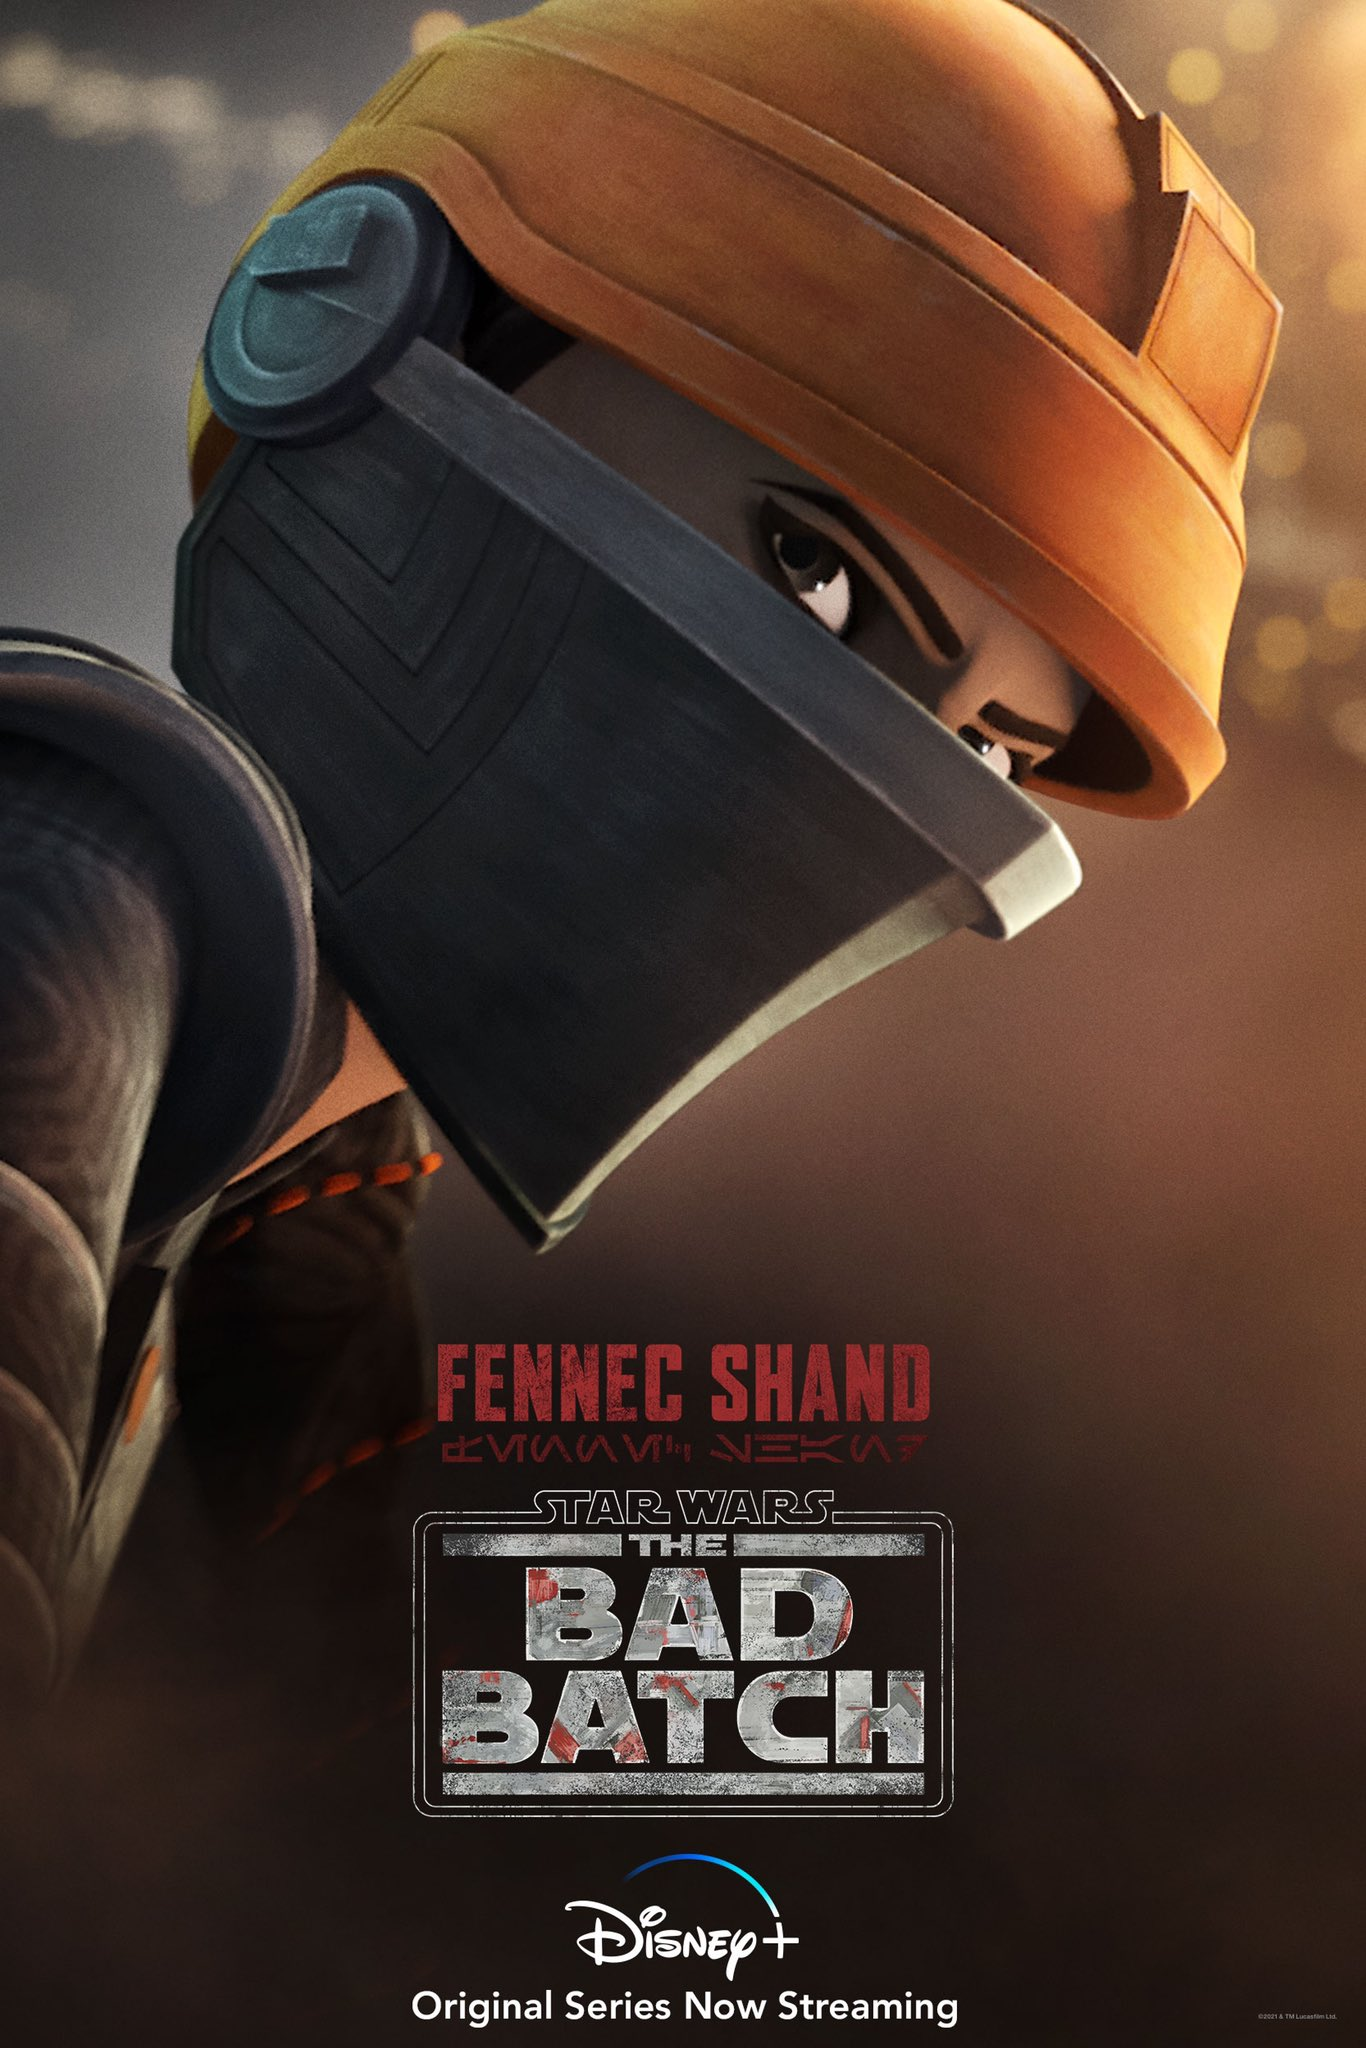 Fennec Shand The Bad Batch Character Poster